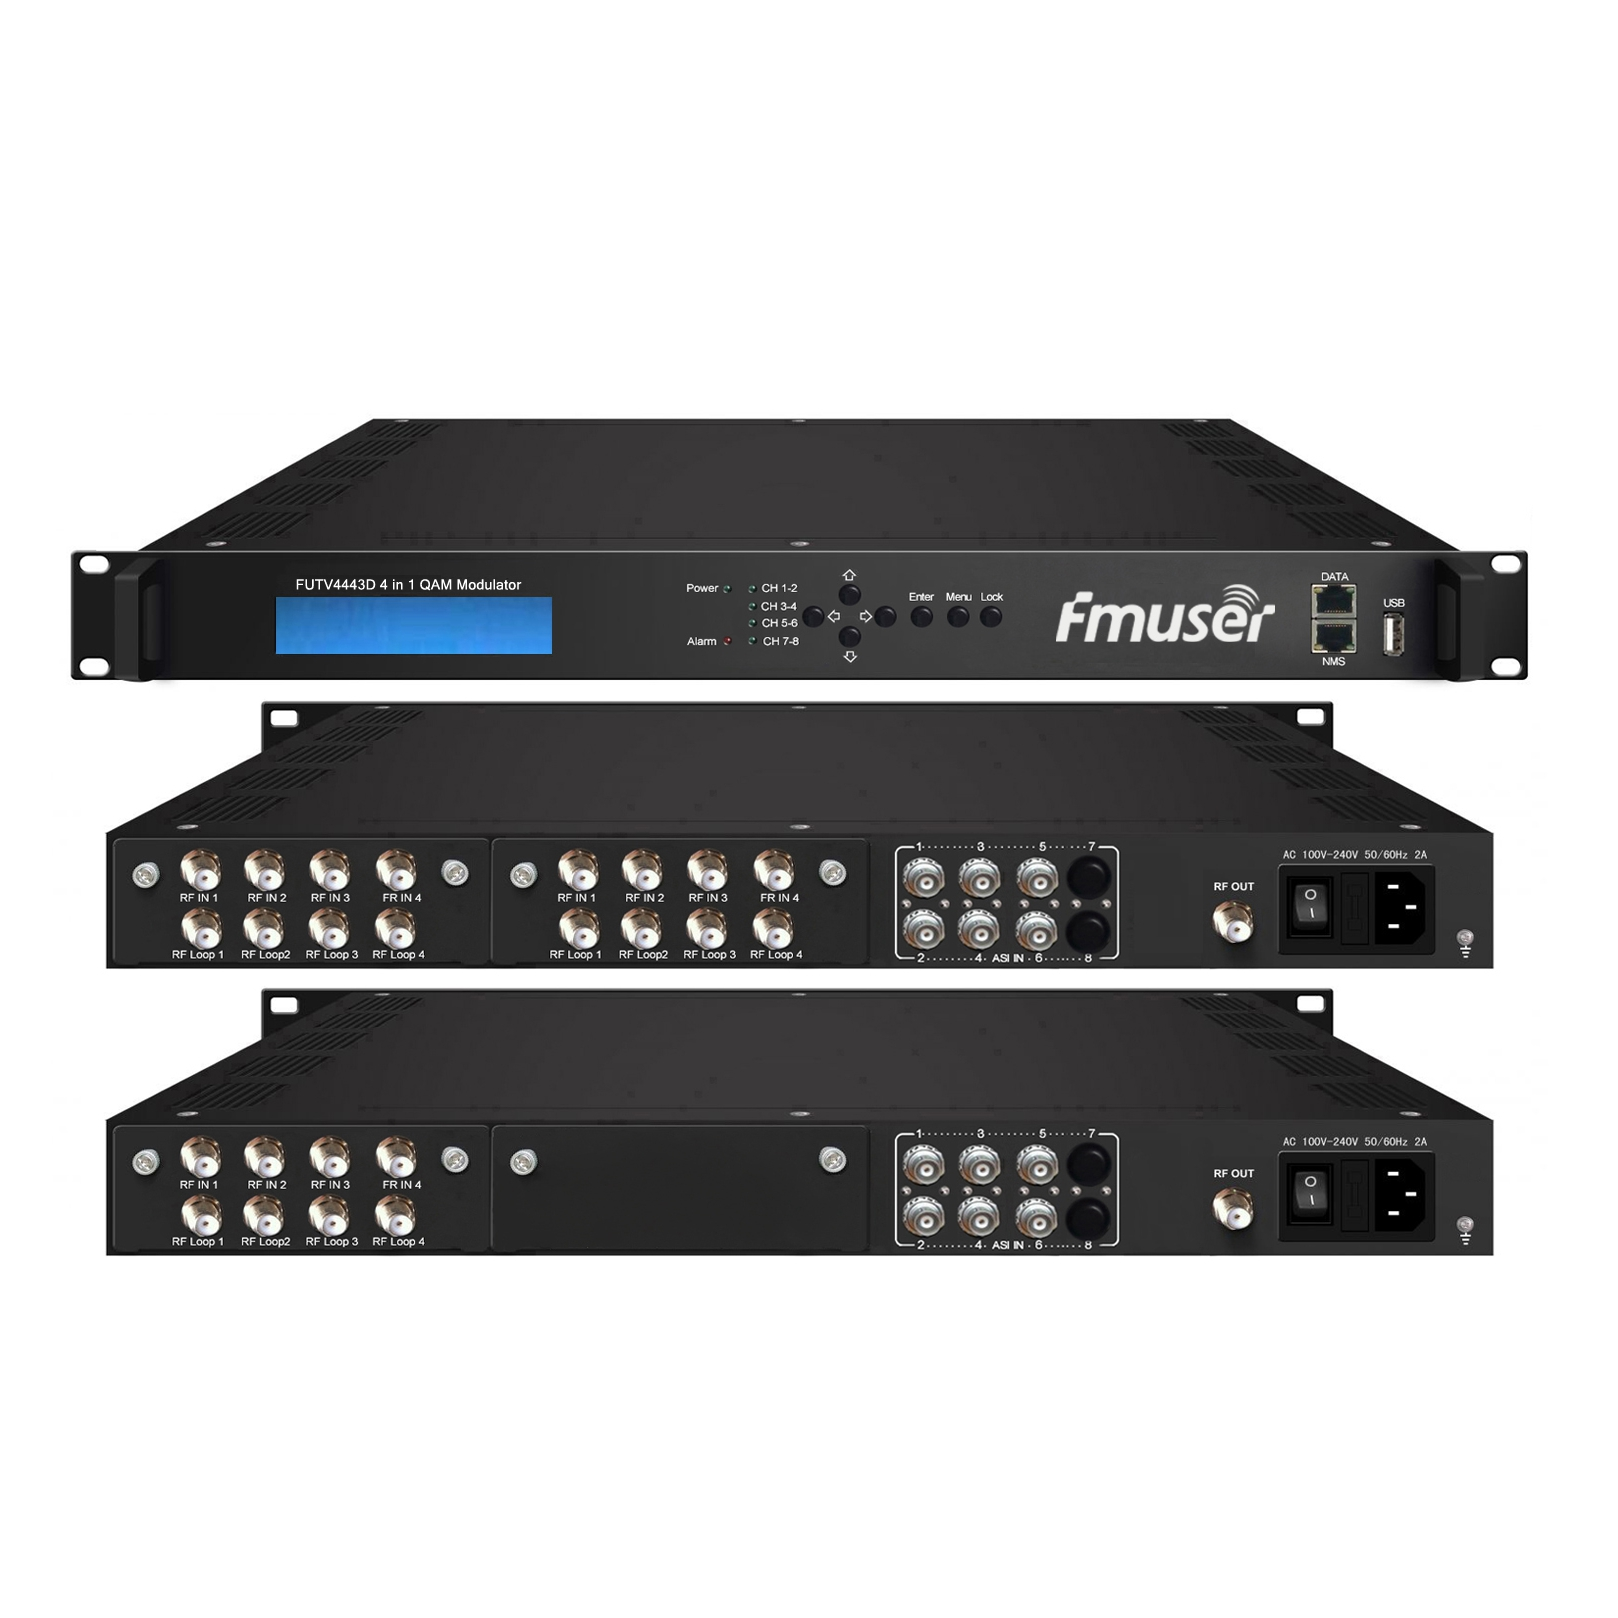 FMUSER FUTV4443D 4 in 1 Mux-Scrambling QAM Modulator(8Tuner + 6*ASI in, 4Tuner + 6*ASI +2*IP out)with web managementtor